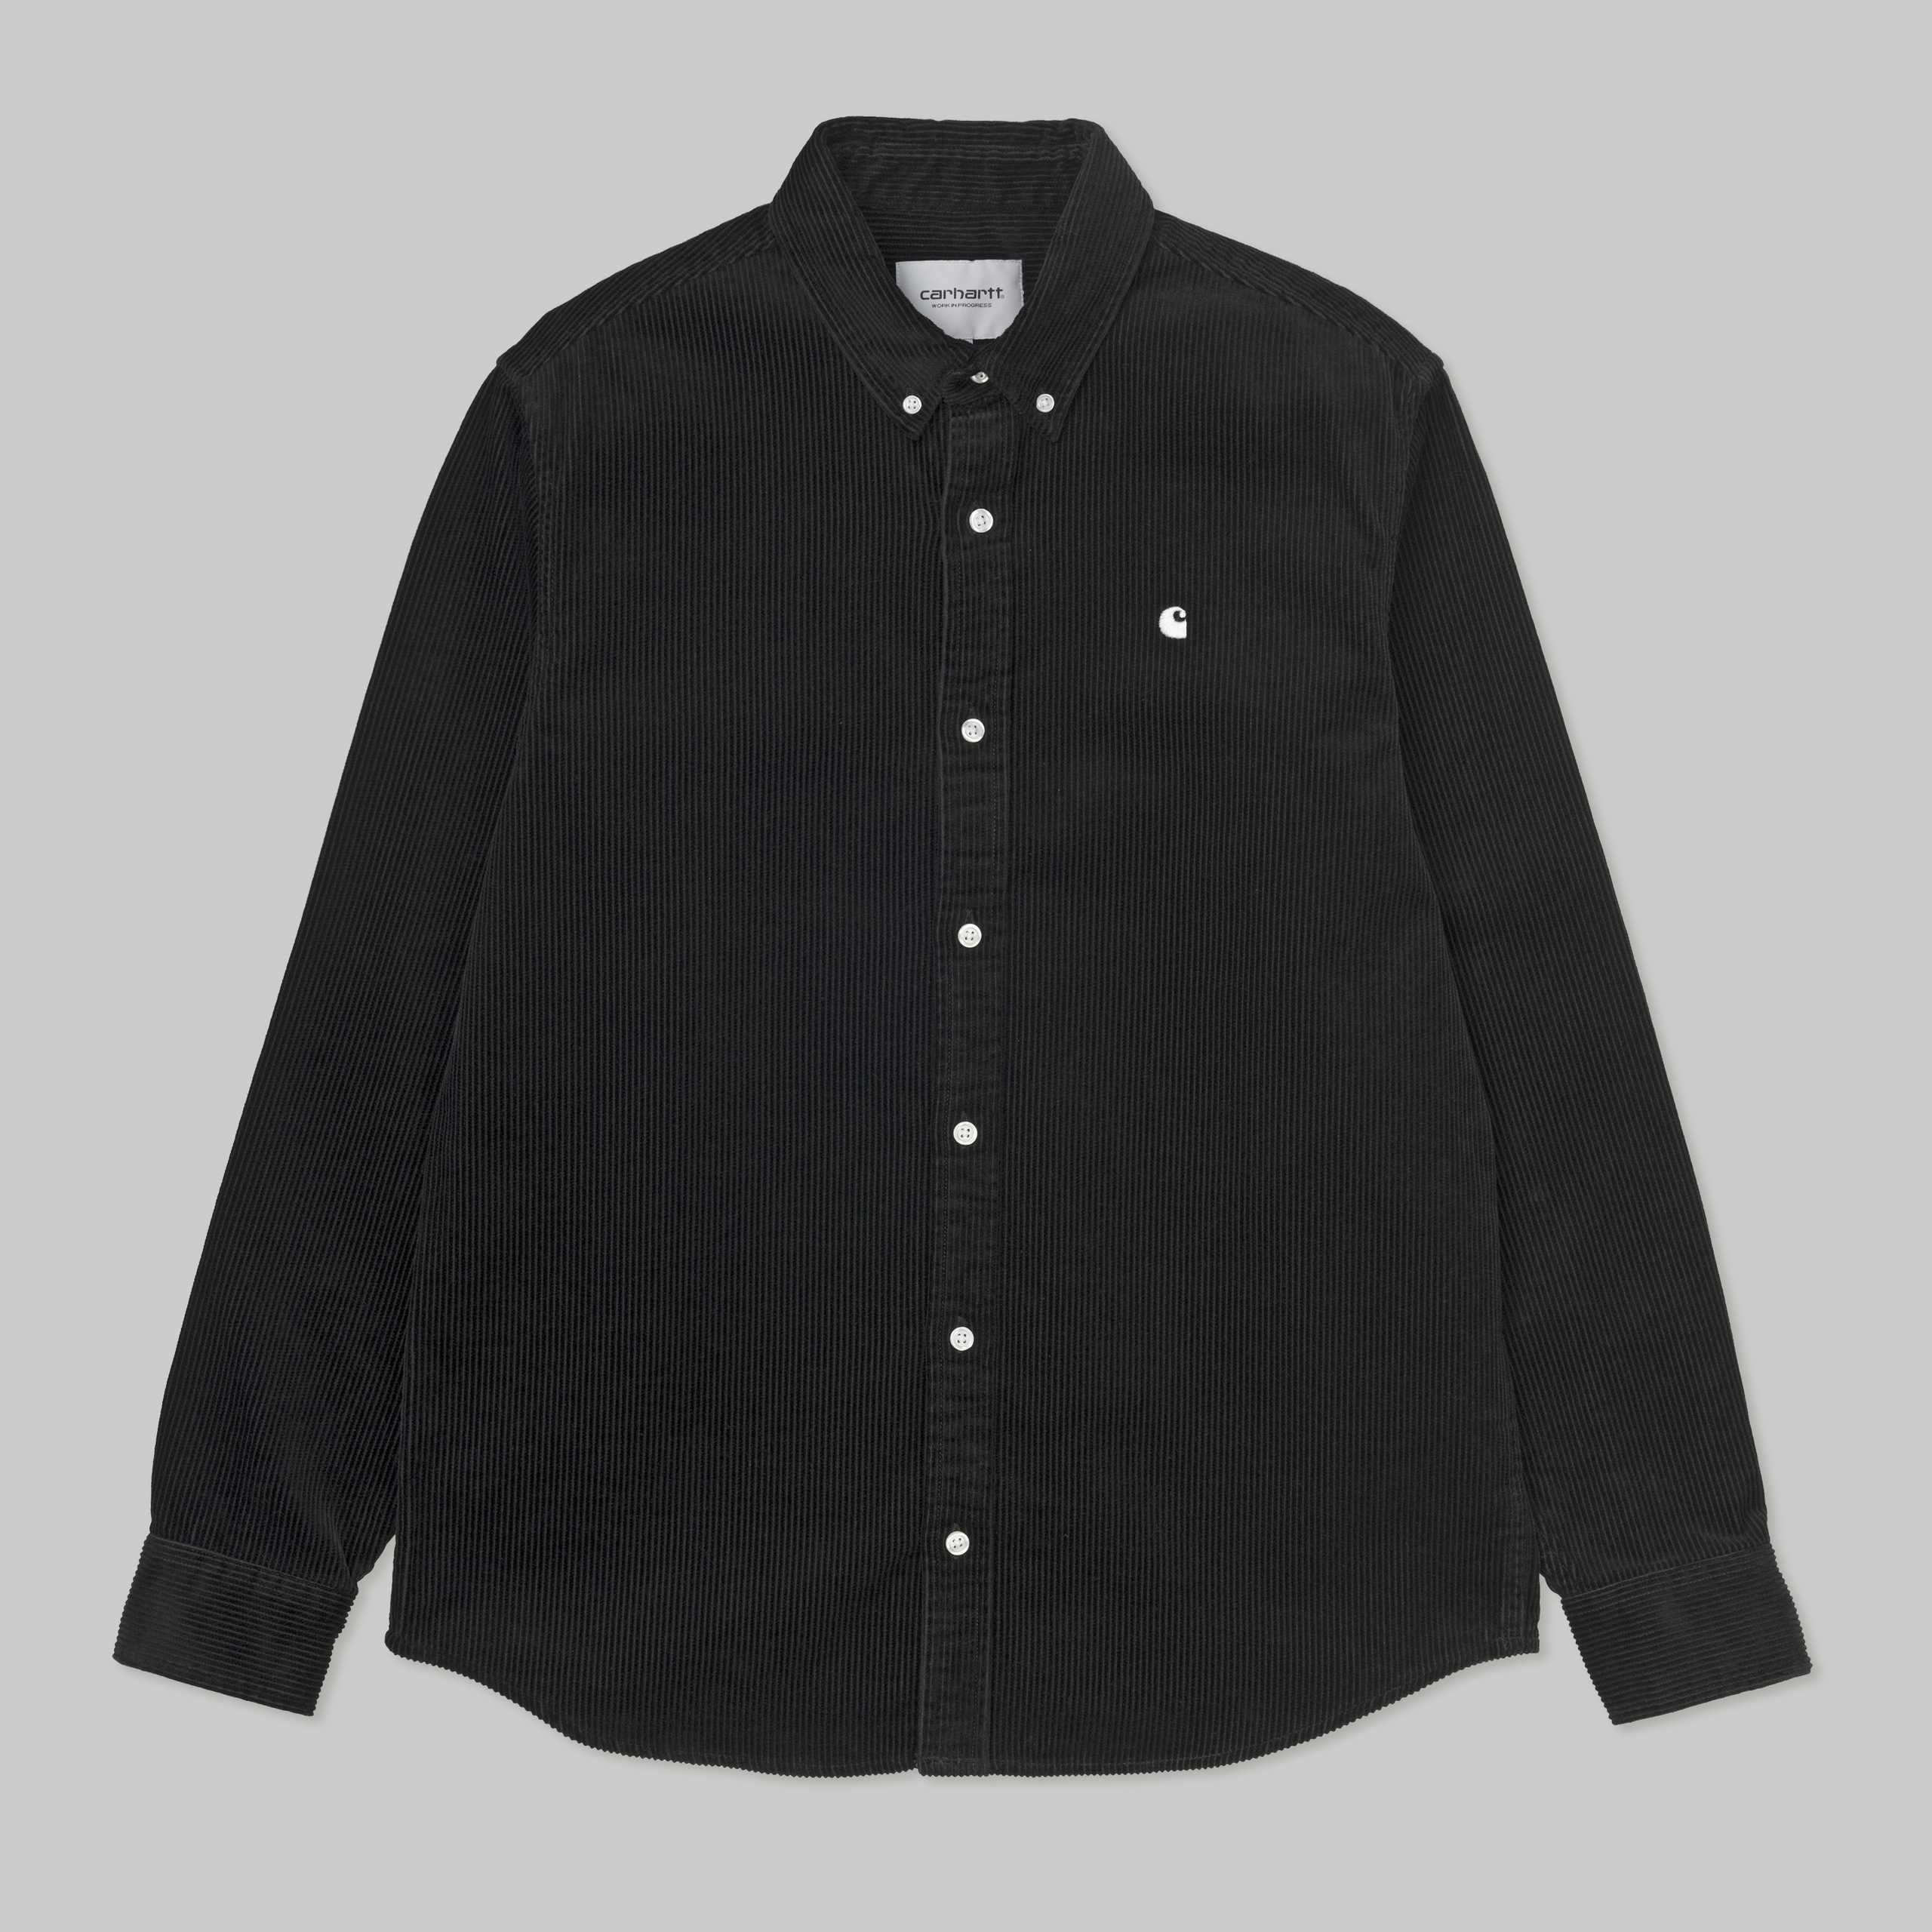 l-s-madison-cord-shirt-black-white-1715